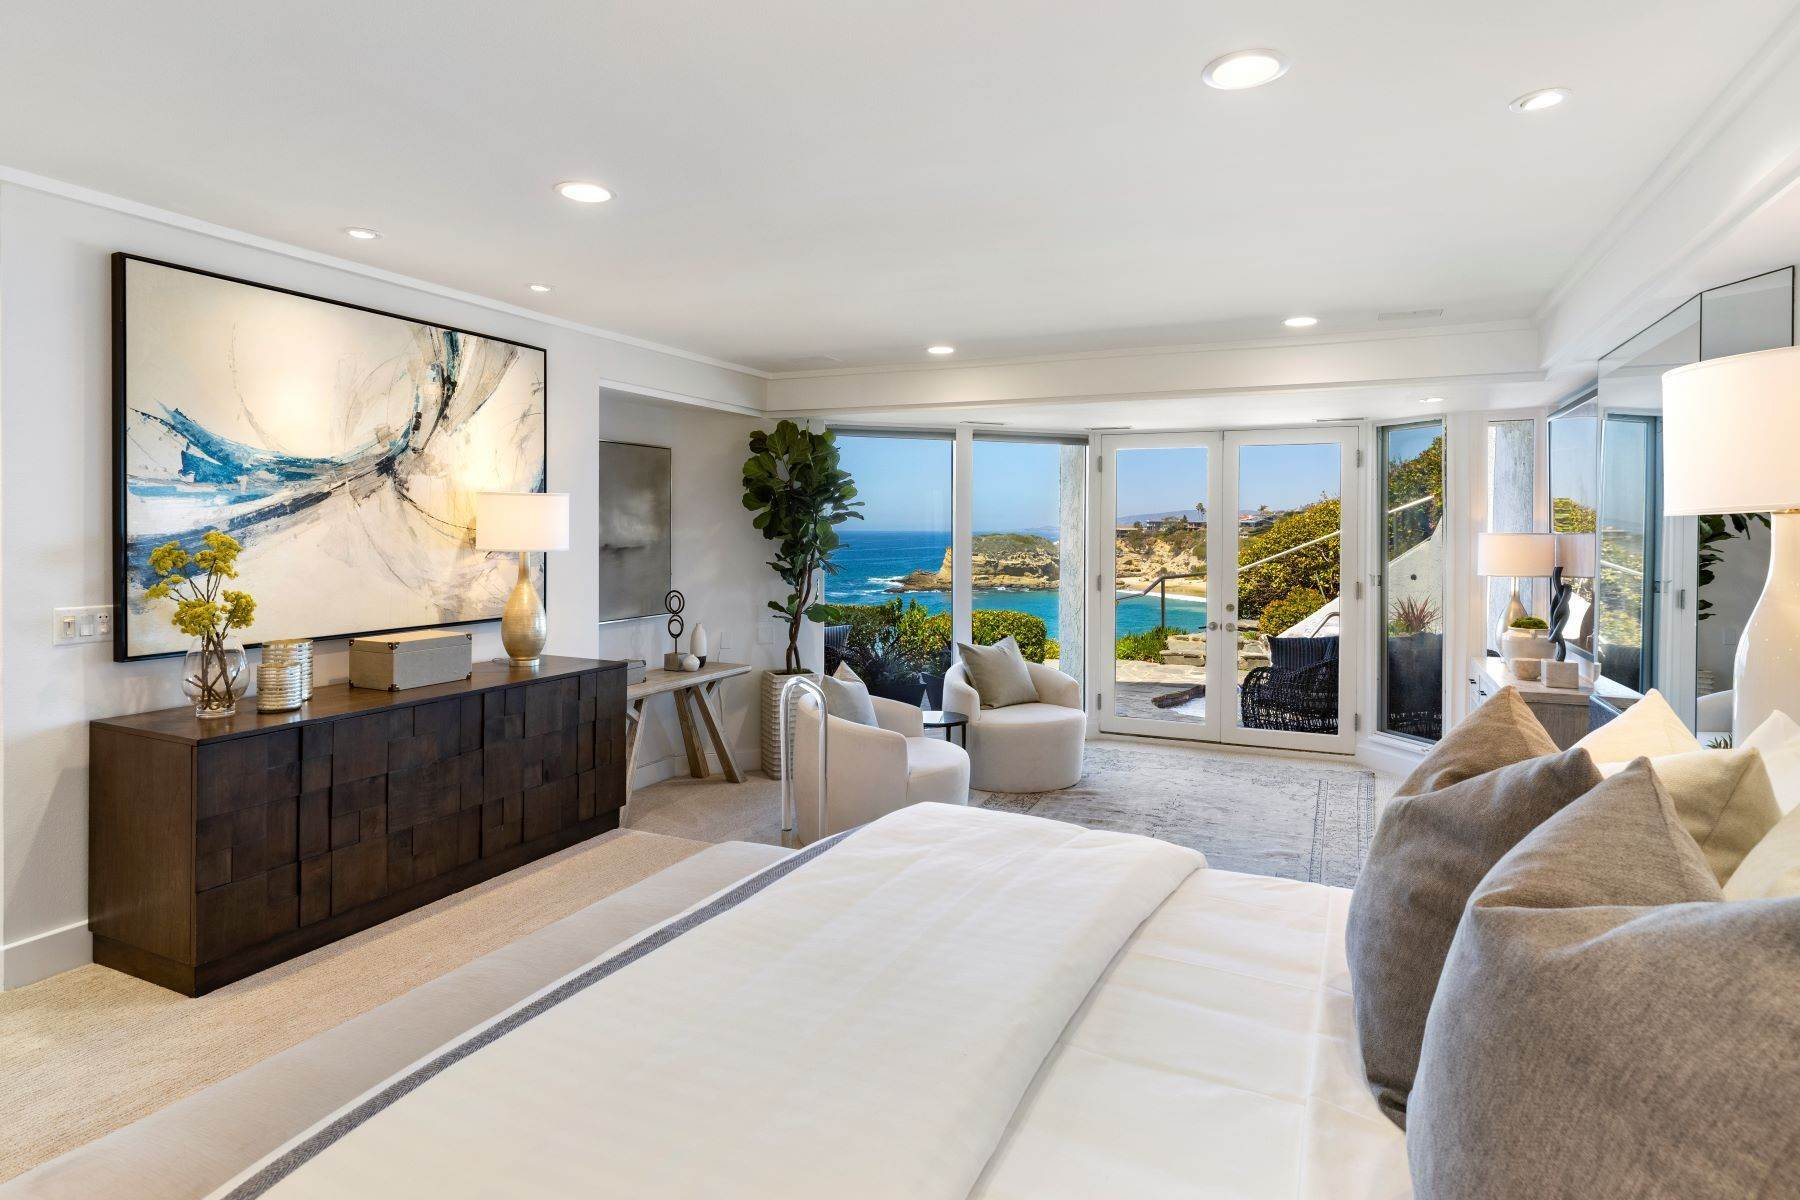 27. Single Family Homes for Sale at 112 South La Senda Drive, Laguna Beach, CA 92651 112 South La Senda Drive Laguna Beach, California 92651 United States